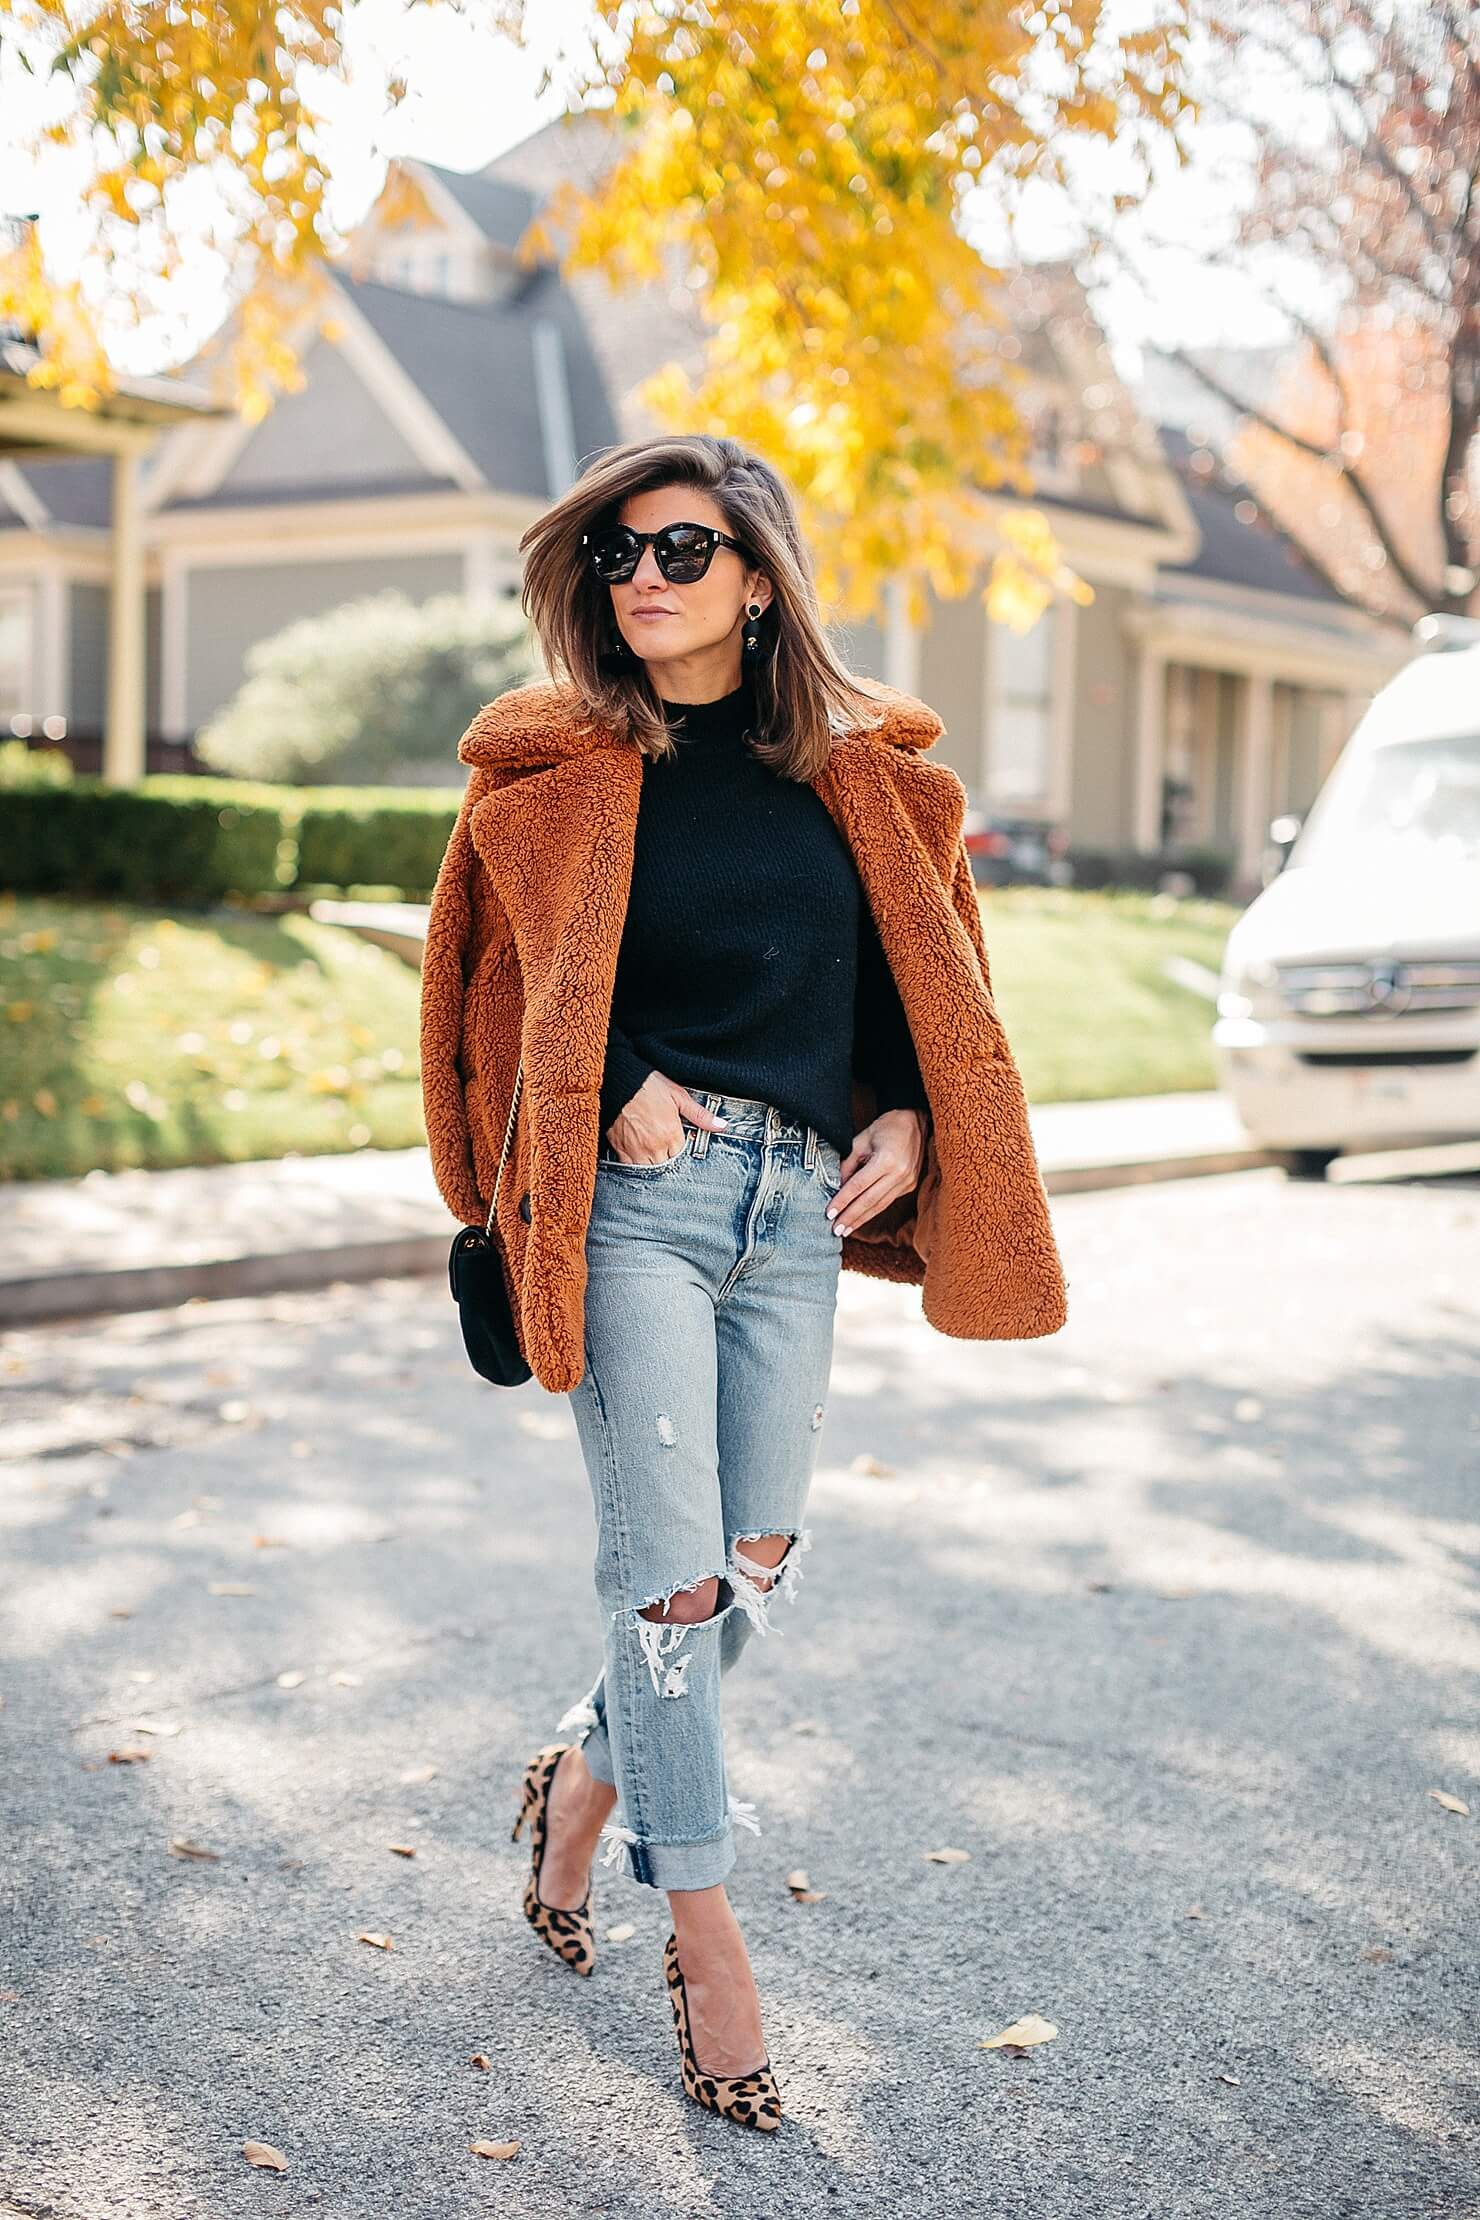 orange teddy coat, black sweater, distressed levi jeans, leopard pumps and gucci cross body